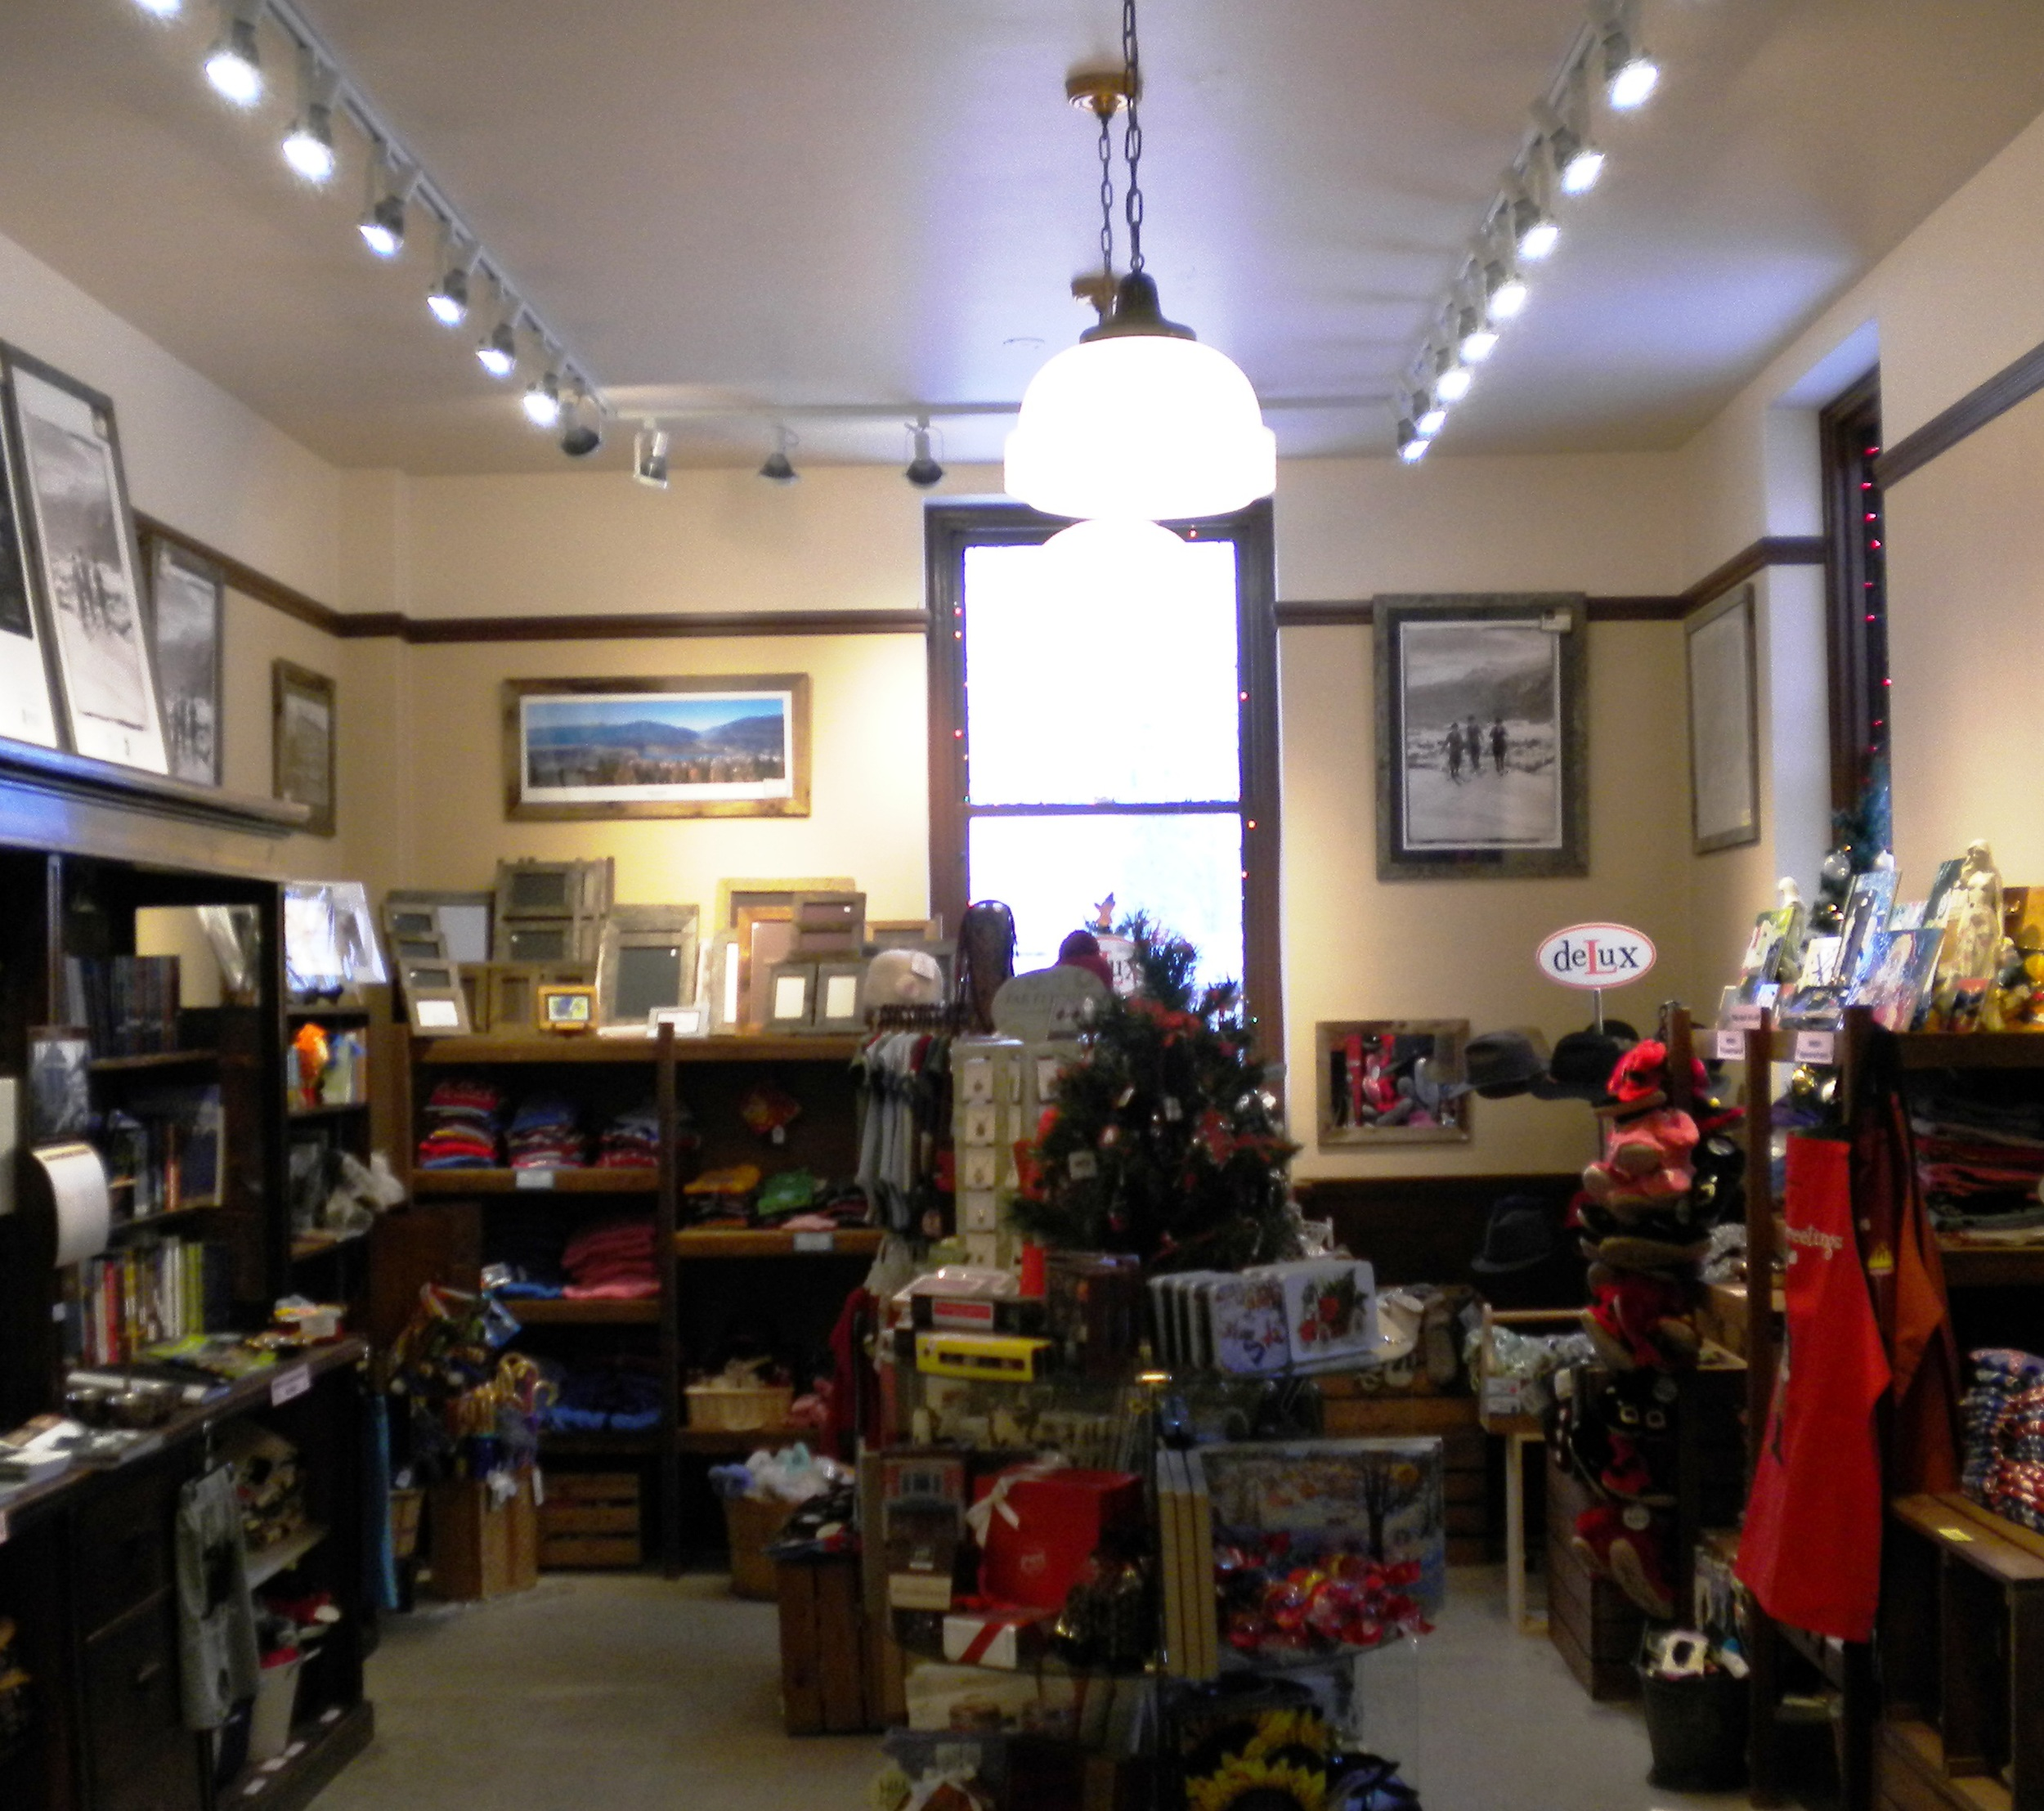 The gift shop has a bright new look with the installation of modern track lighting, and heritage lamps from the former Selkirk School.